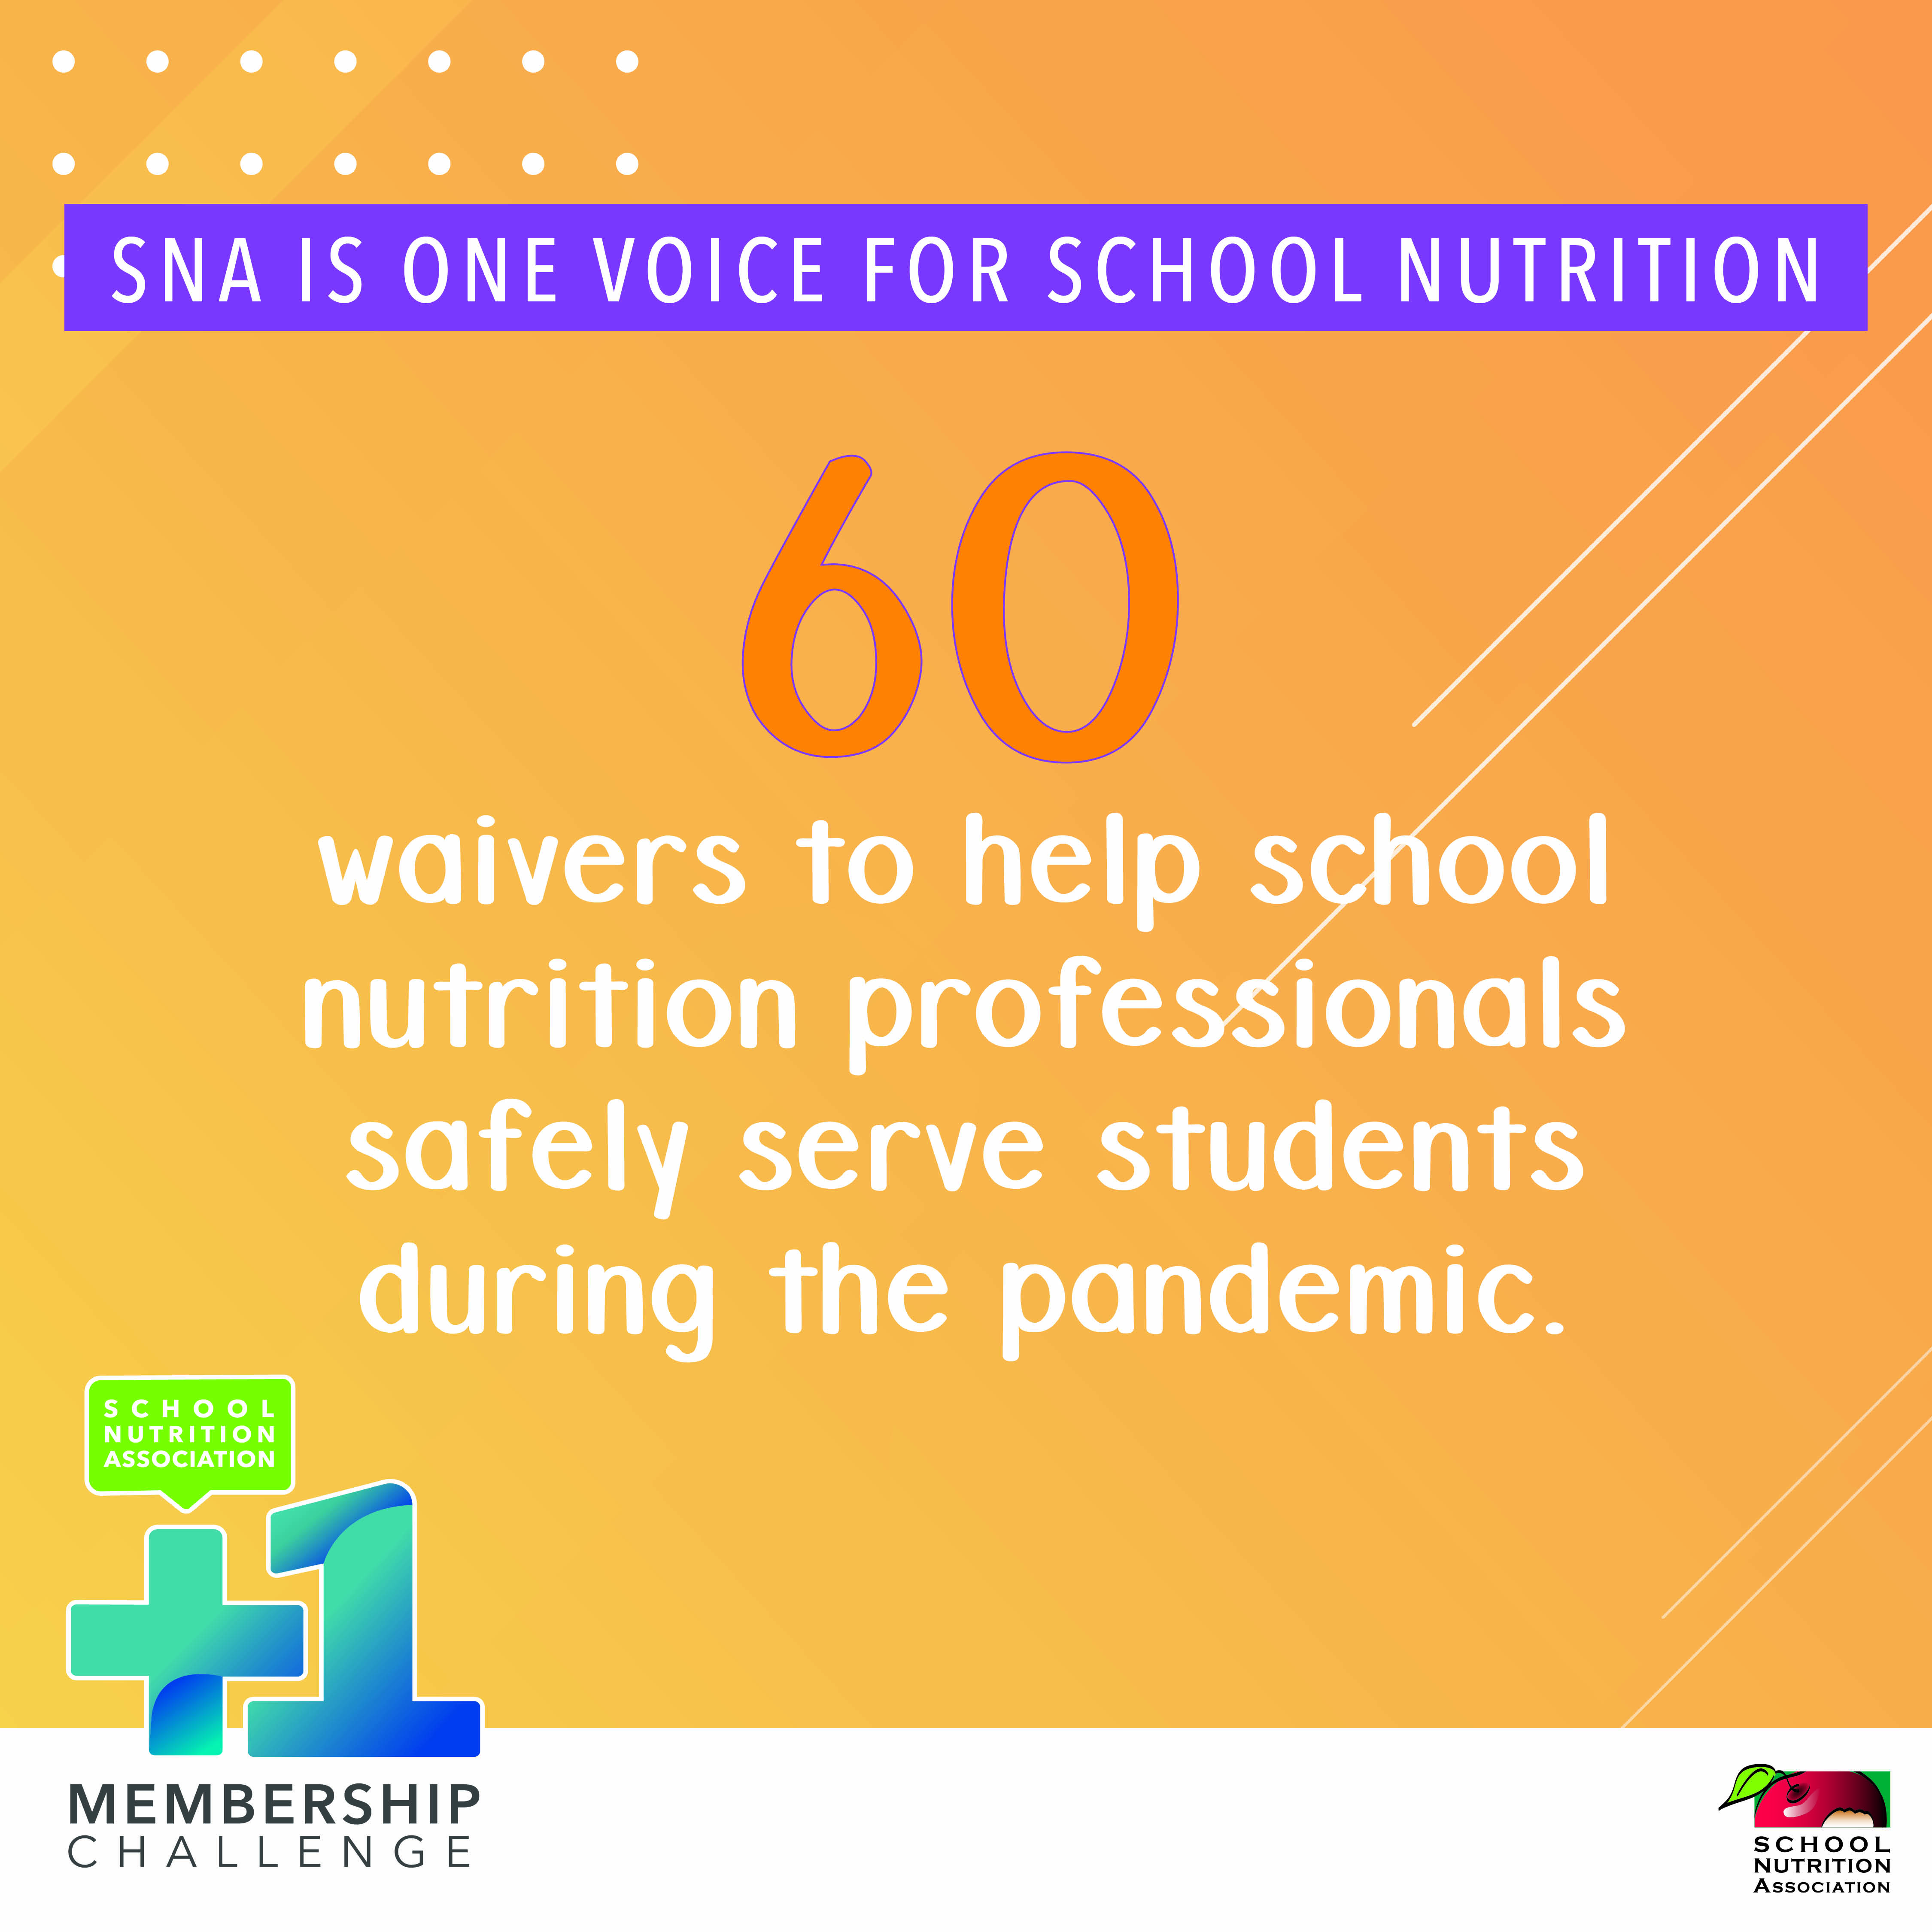 Add-Your-Voice-for-School-Nutrition-Instagram